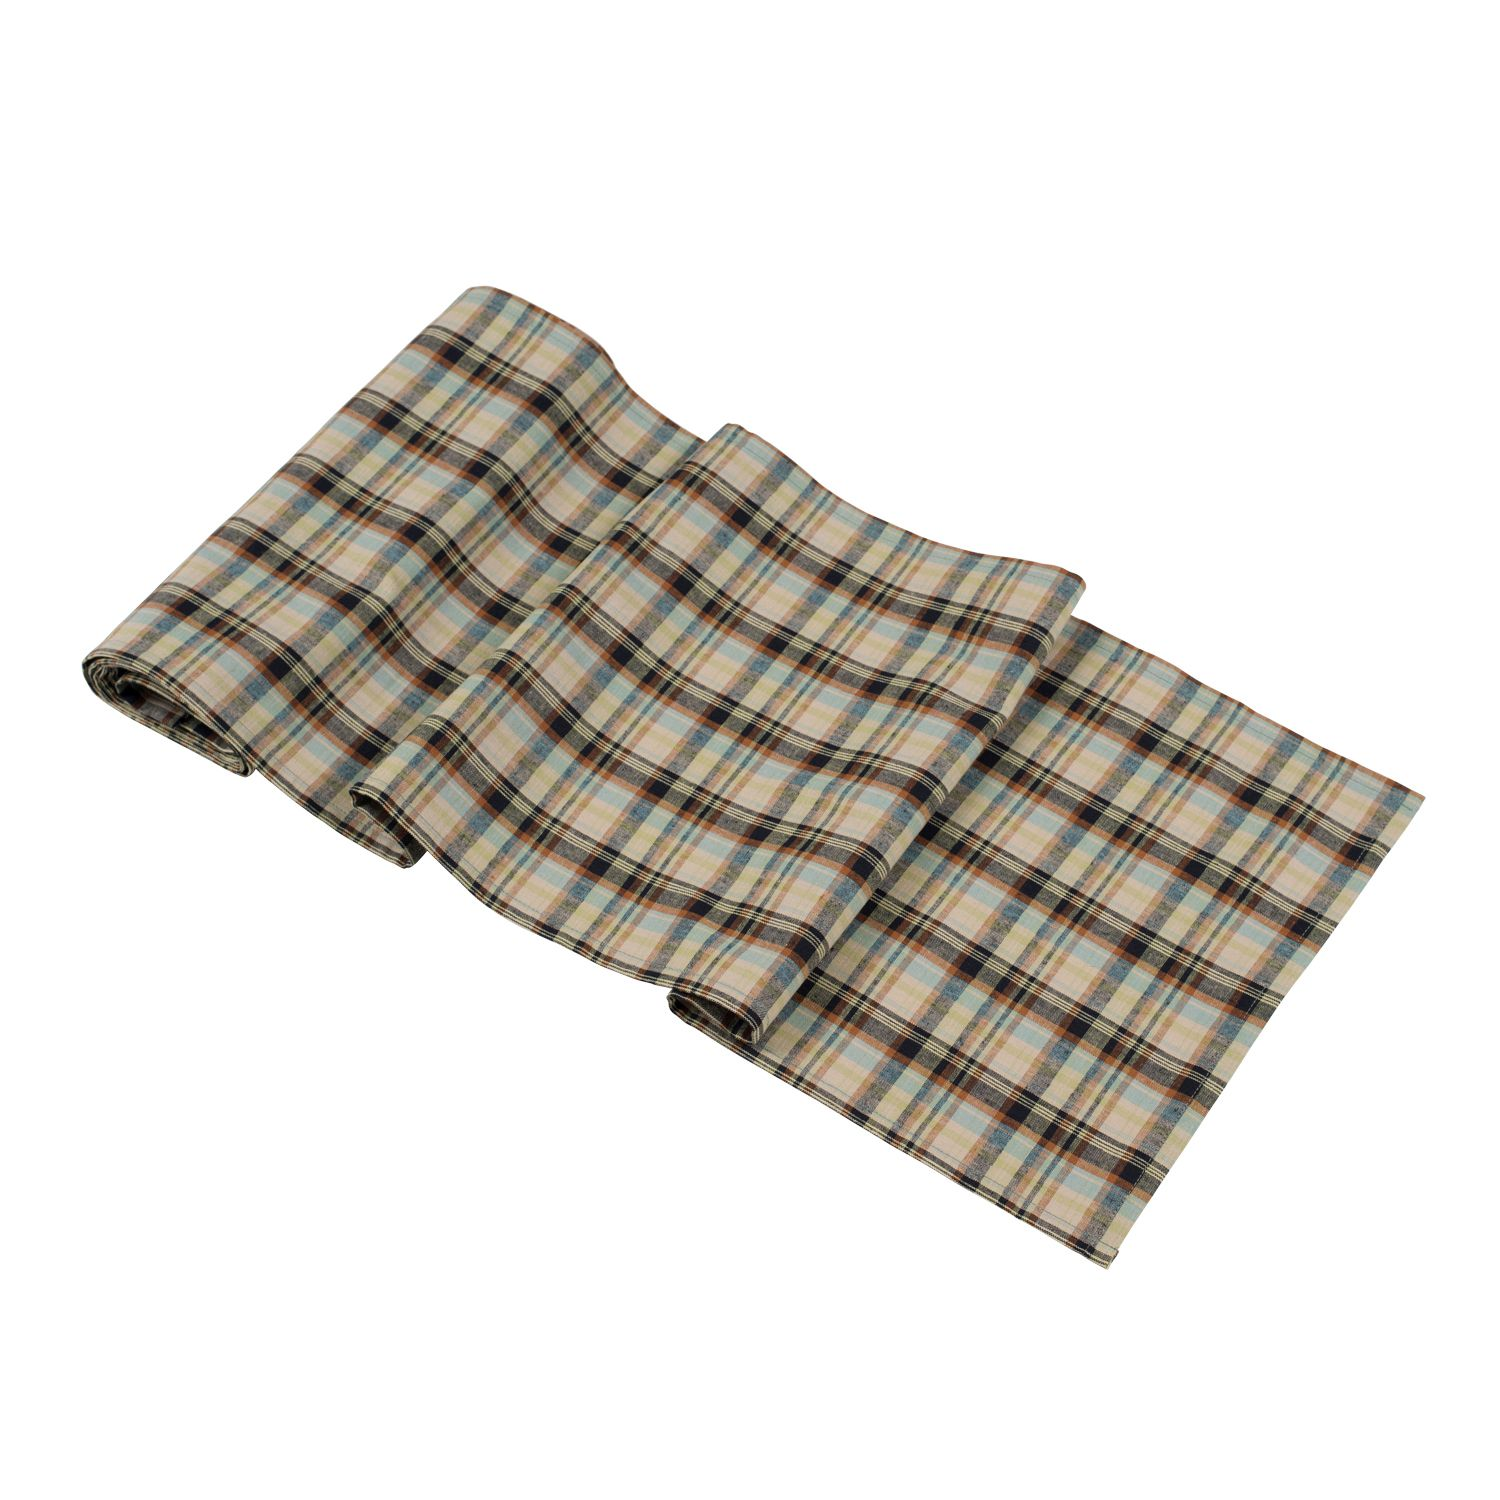 Plaid Taupe Huddleson Linens Plaid Neutral Taupe Brown Blue Green Cotton